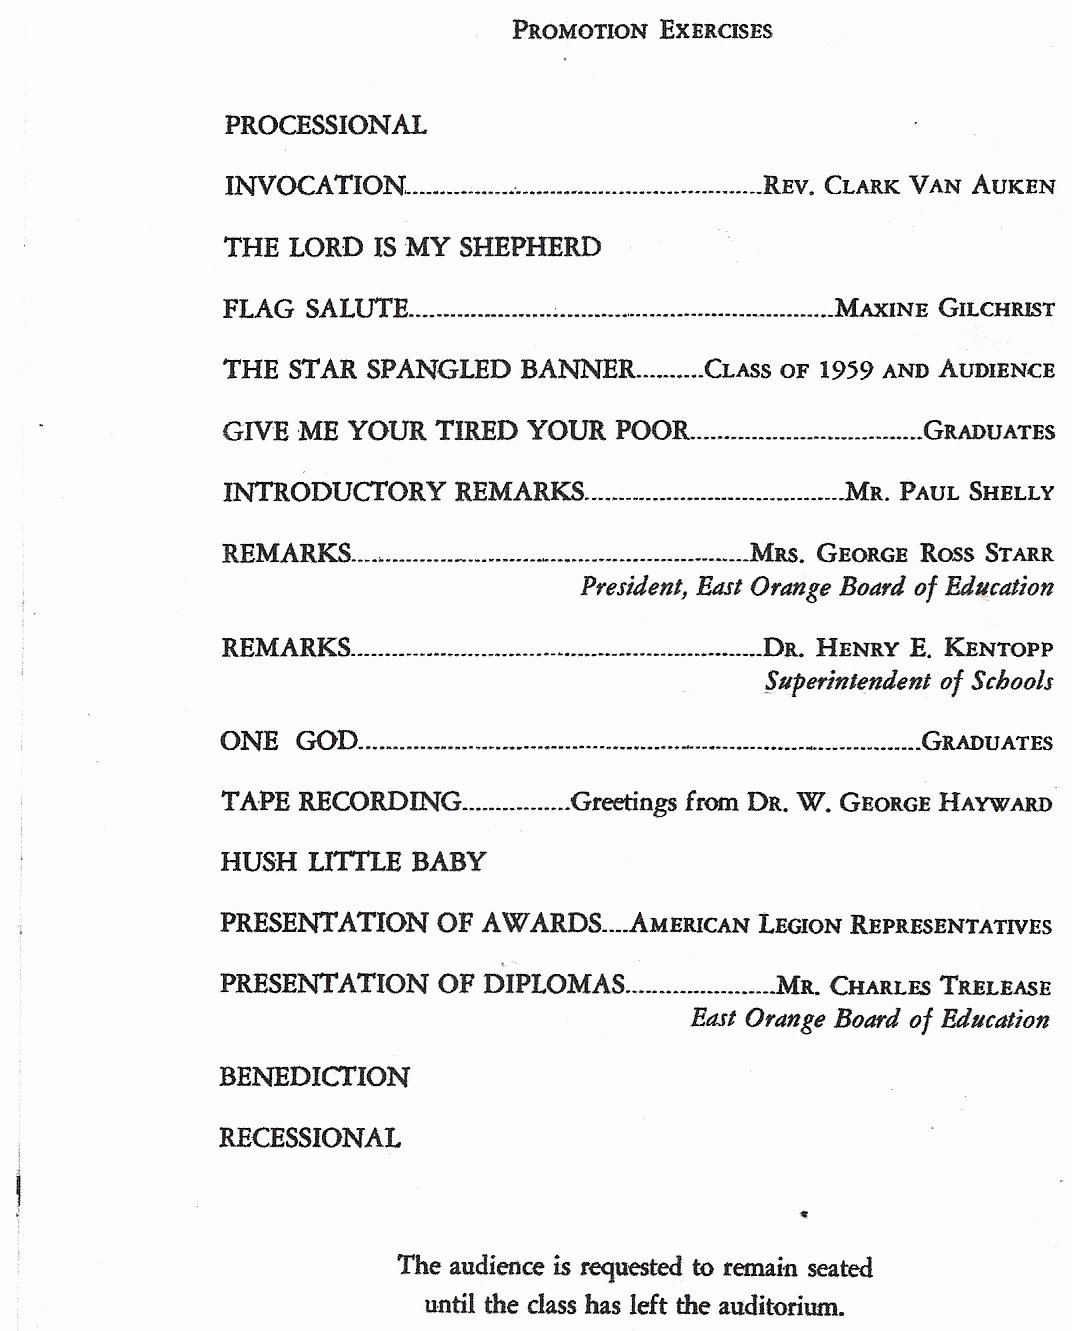 Birthday Party Program Outline New Stockton School 1959 8th Grade Promotion Exercises